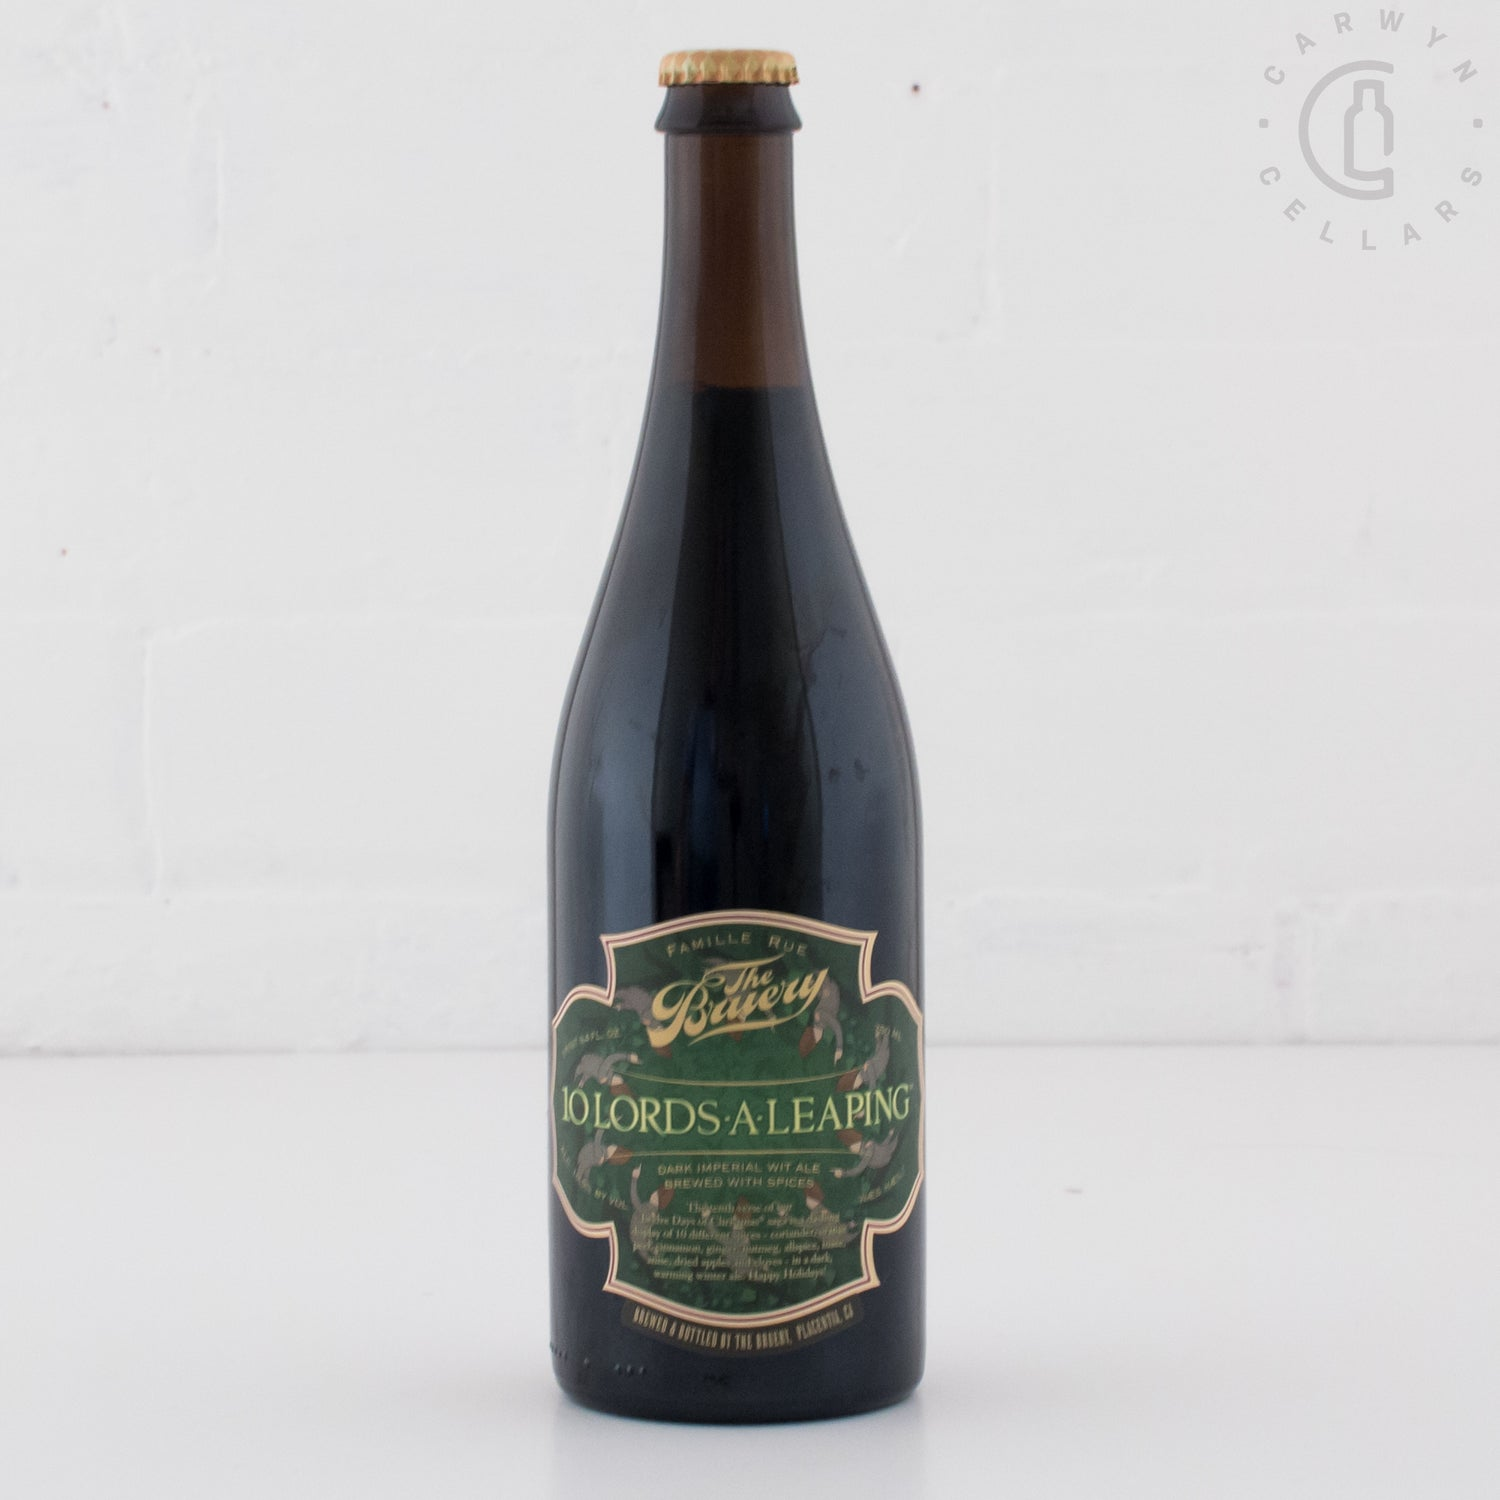 The Bruery 10 Lords A-Leaping